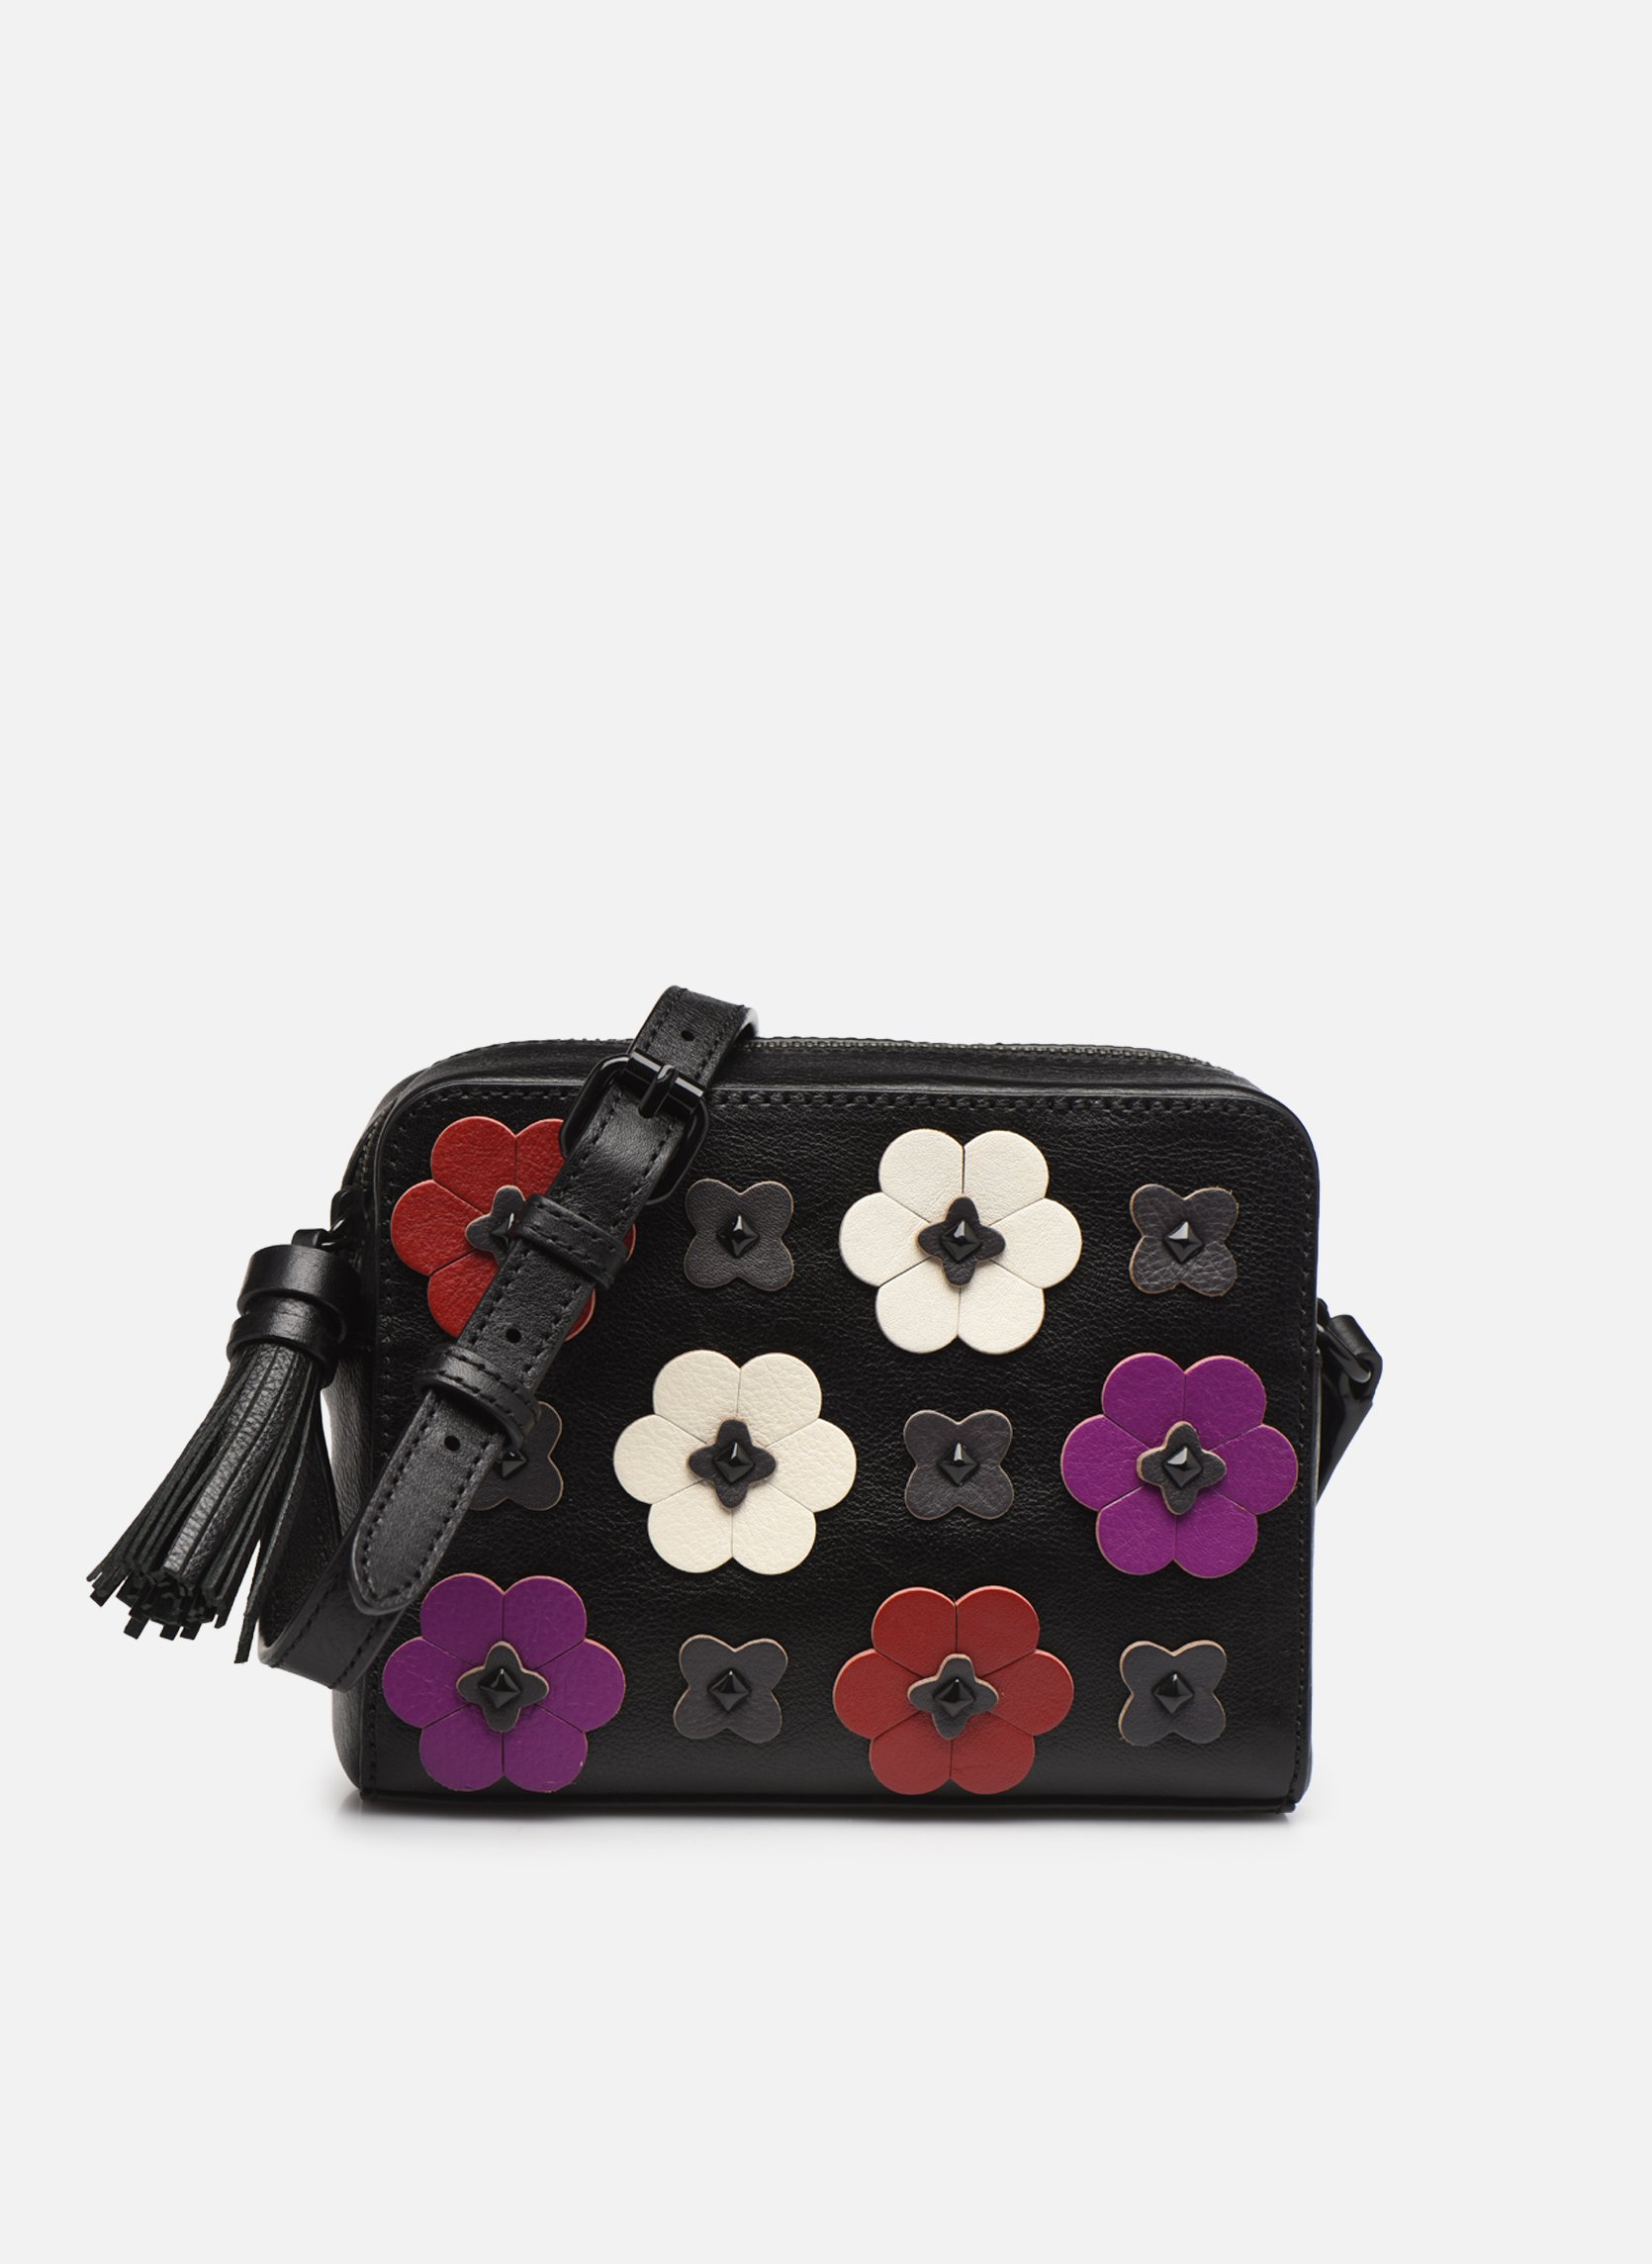 Floral Applique Camera bag